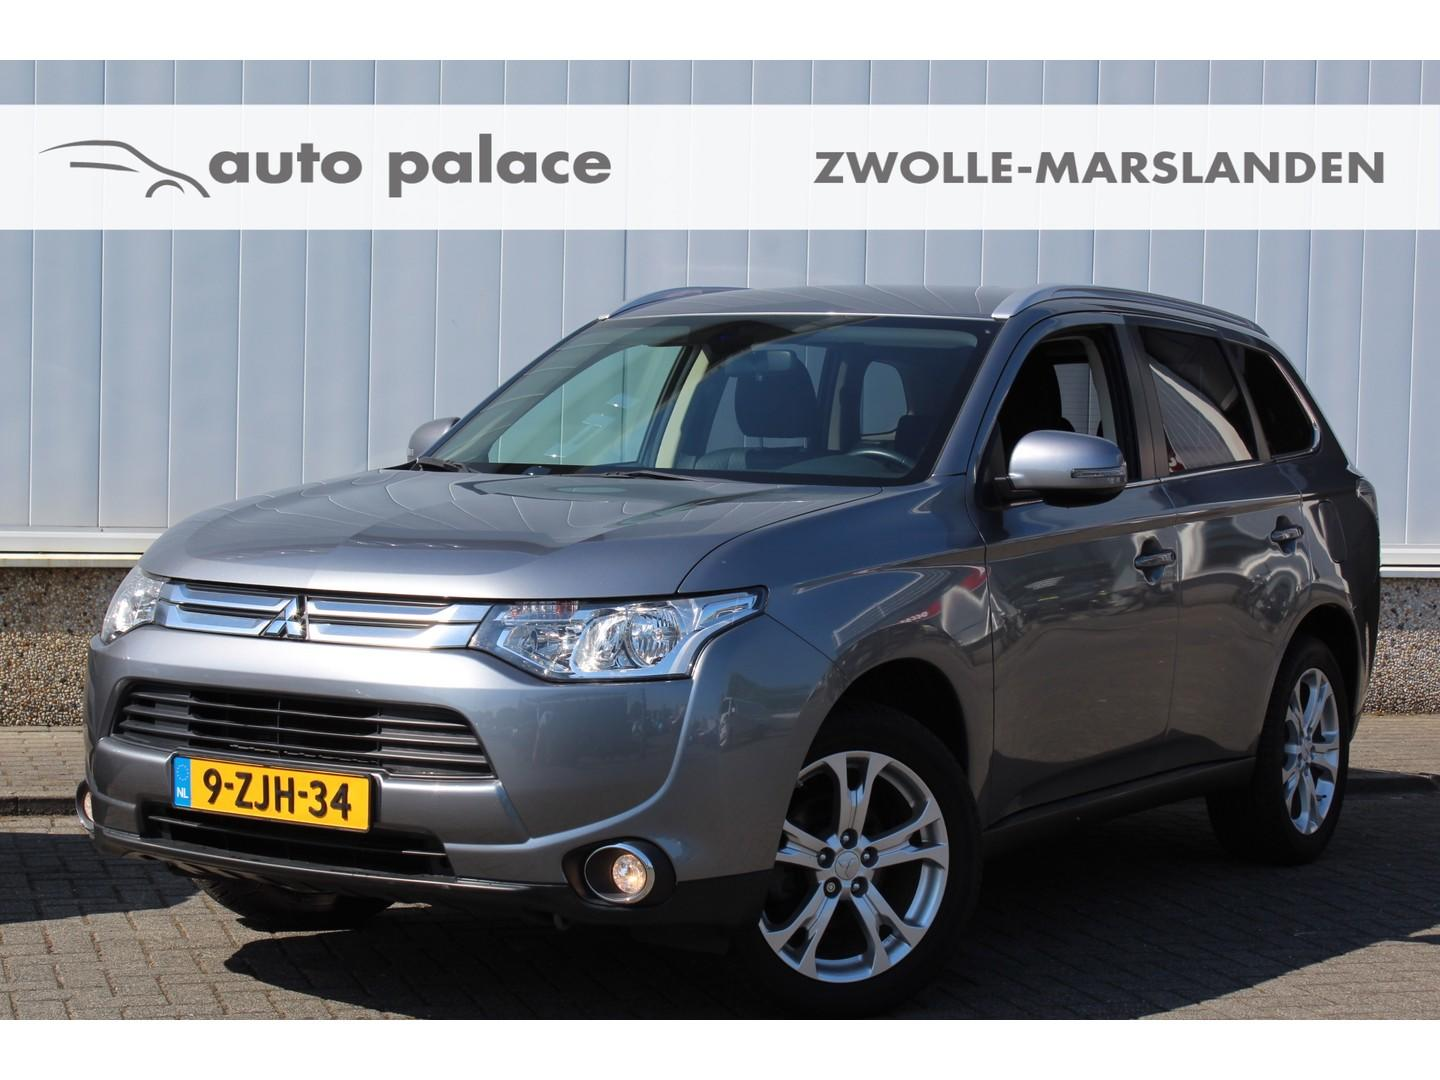 Mitsubishi Outlander 2.0 cvt business edition